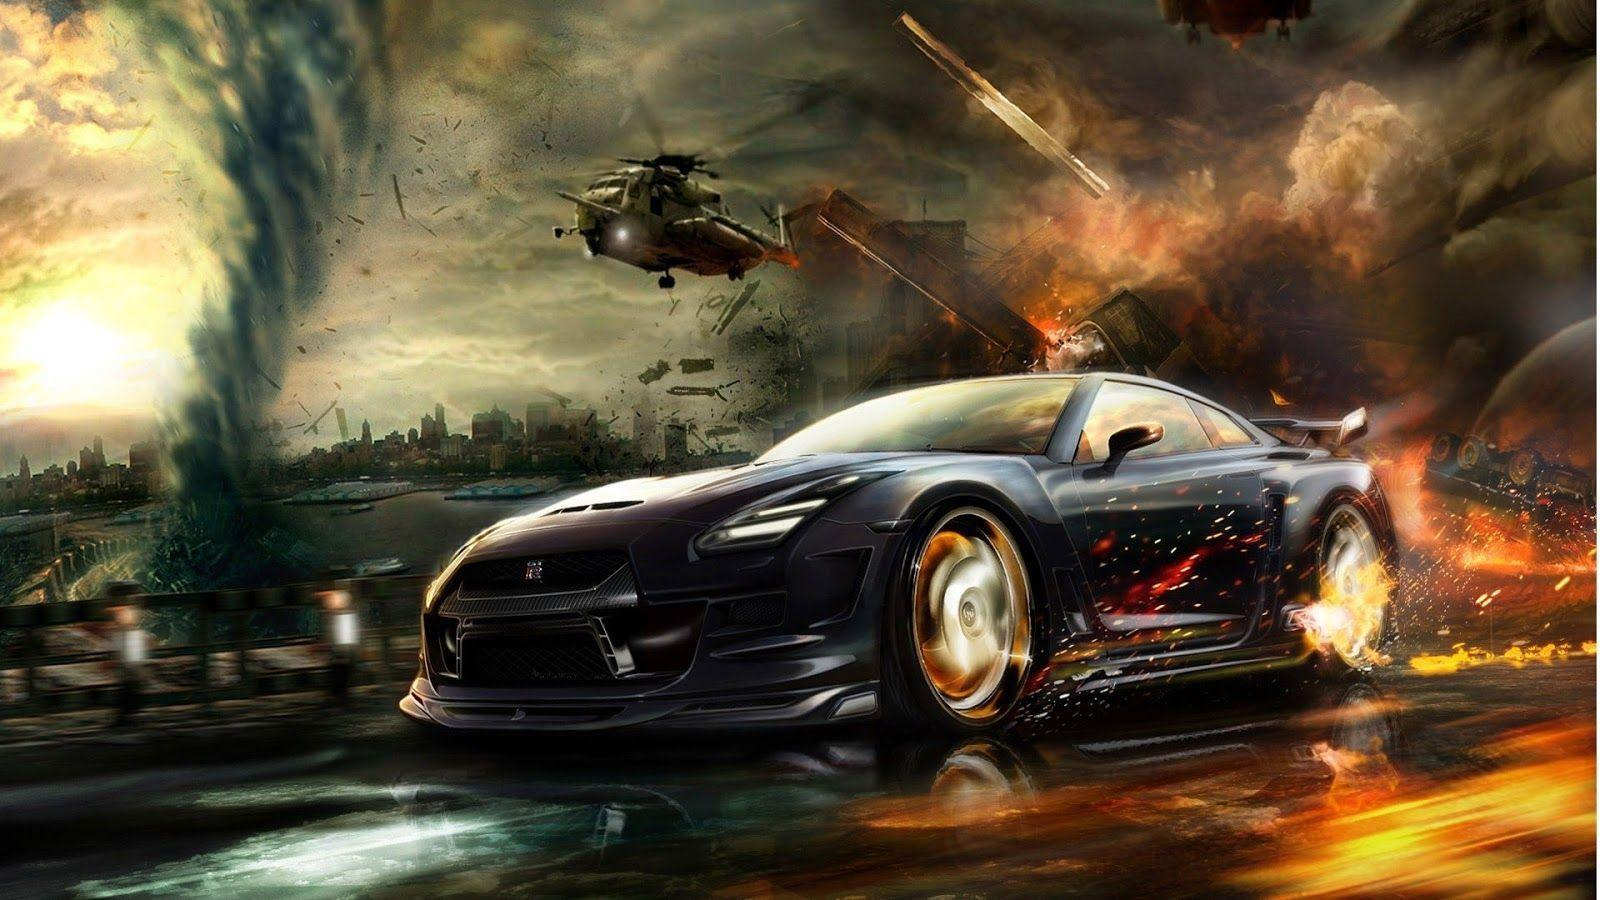 Bets Cool Cars And Image HD Wallpaper Dekstop 12957 Full HD .